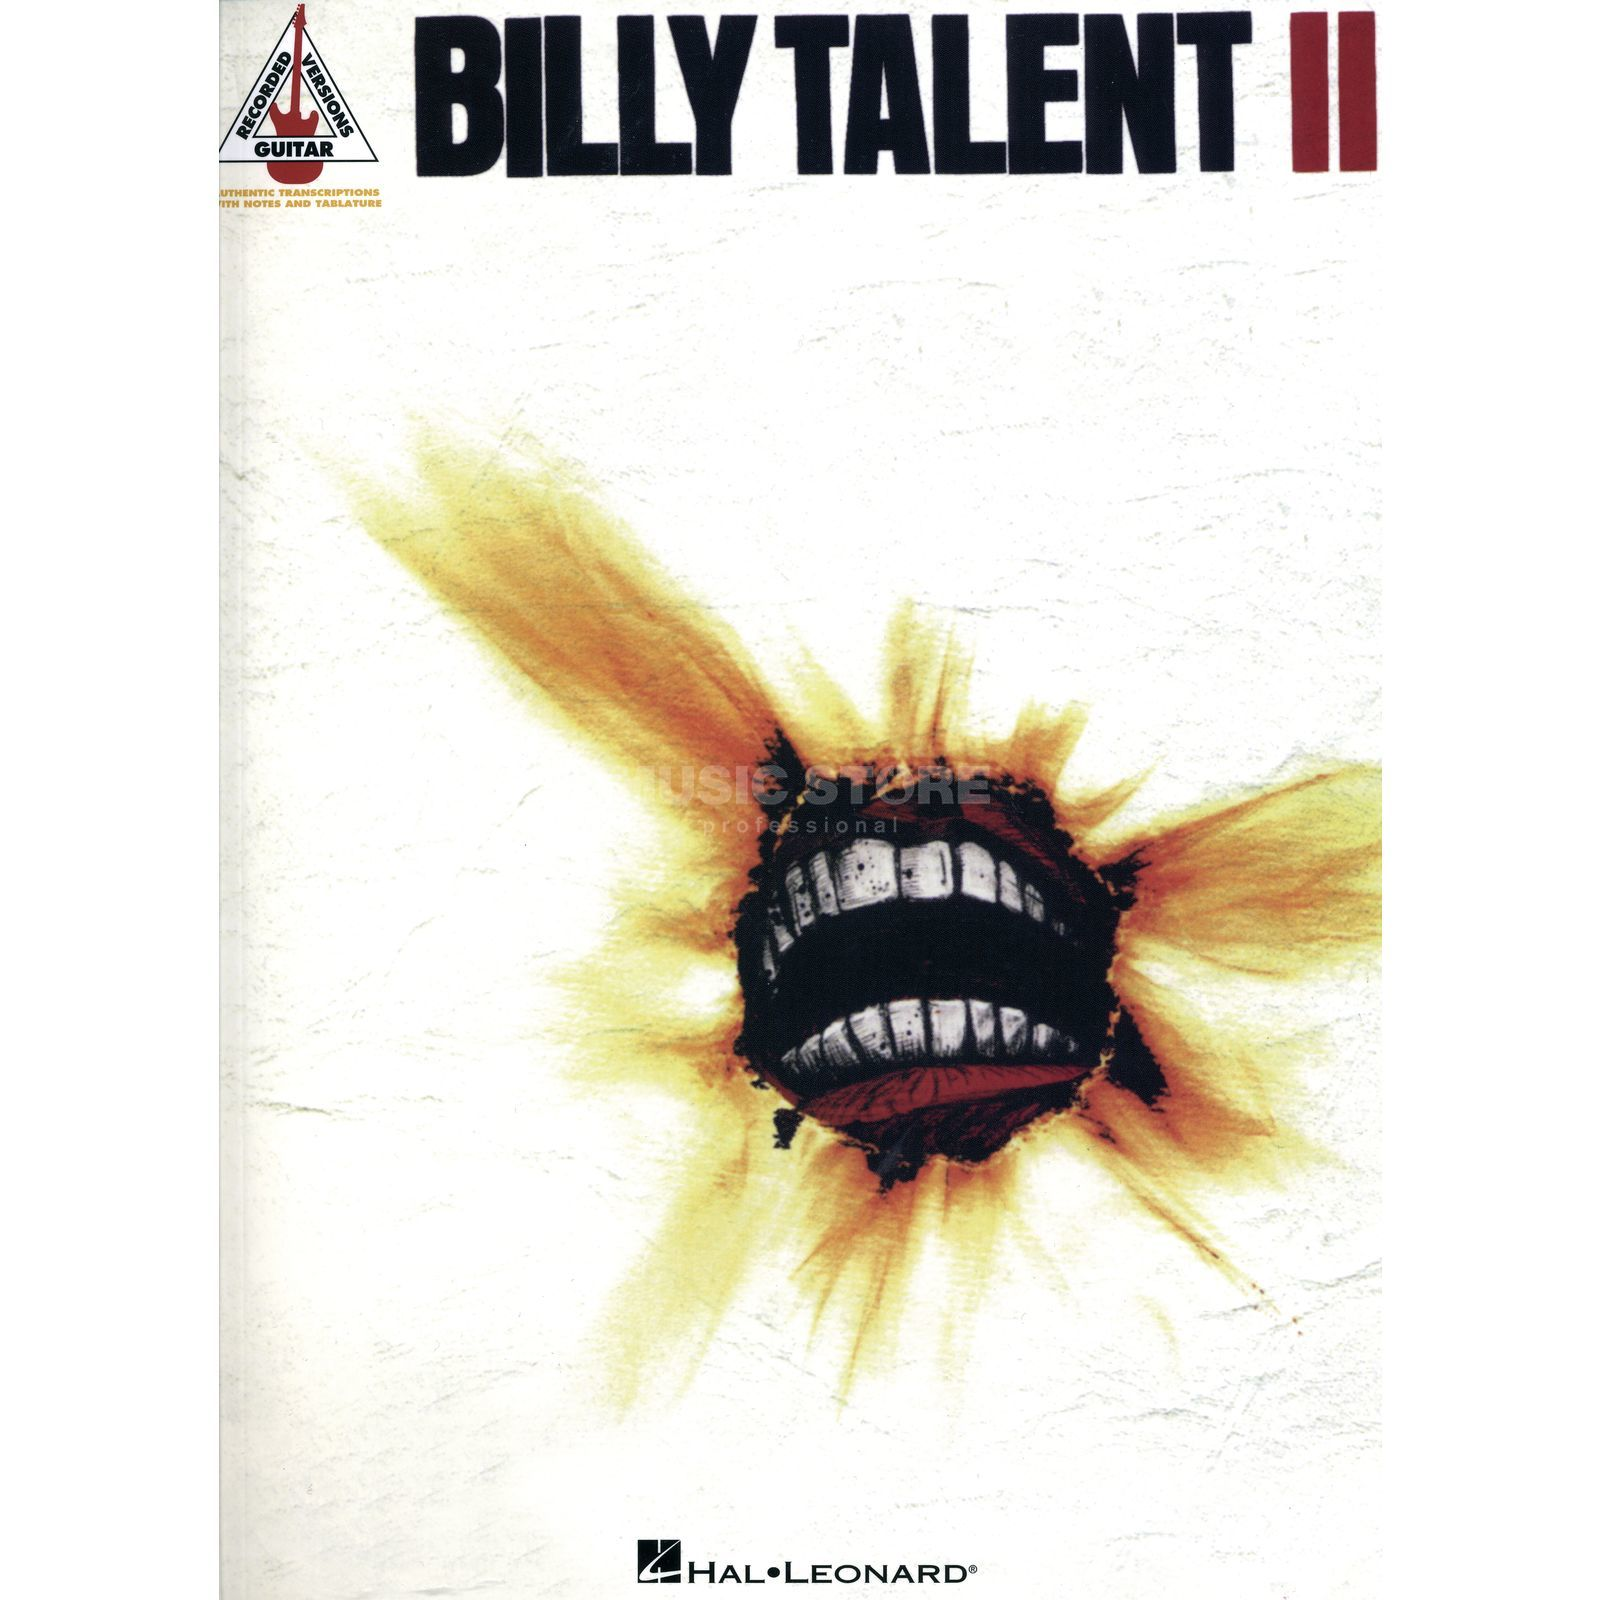 Hal Leonard Billy Talent II Produktbild